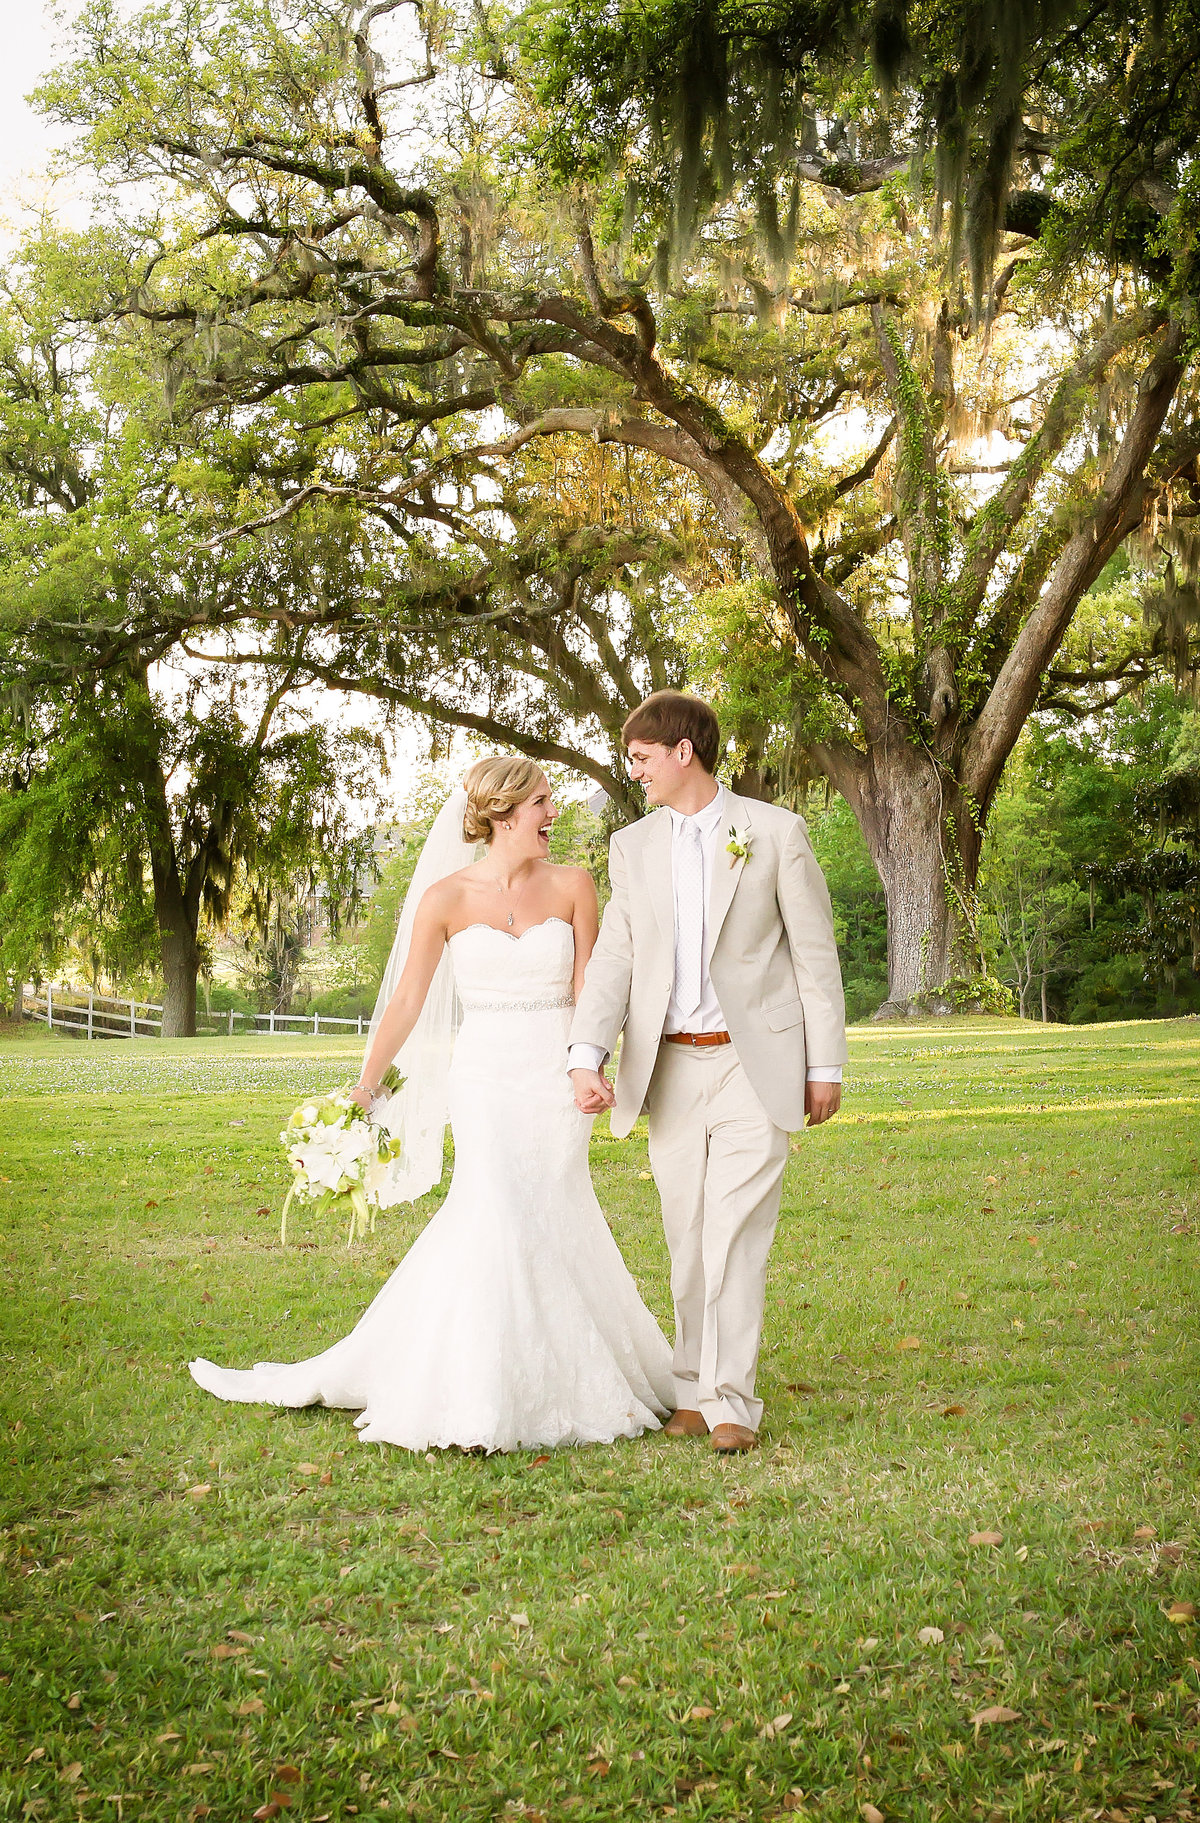 Kayce-Stork-Photography-Biloxi-Wedding-Photographers32